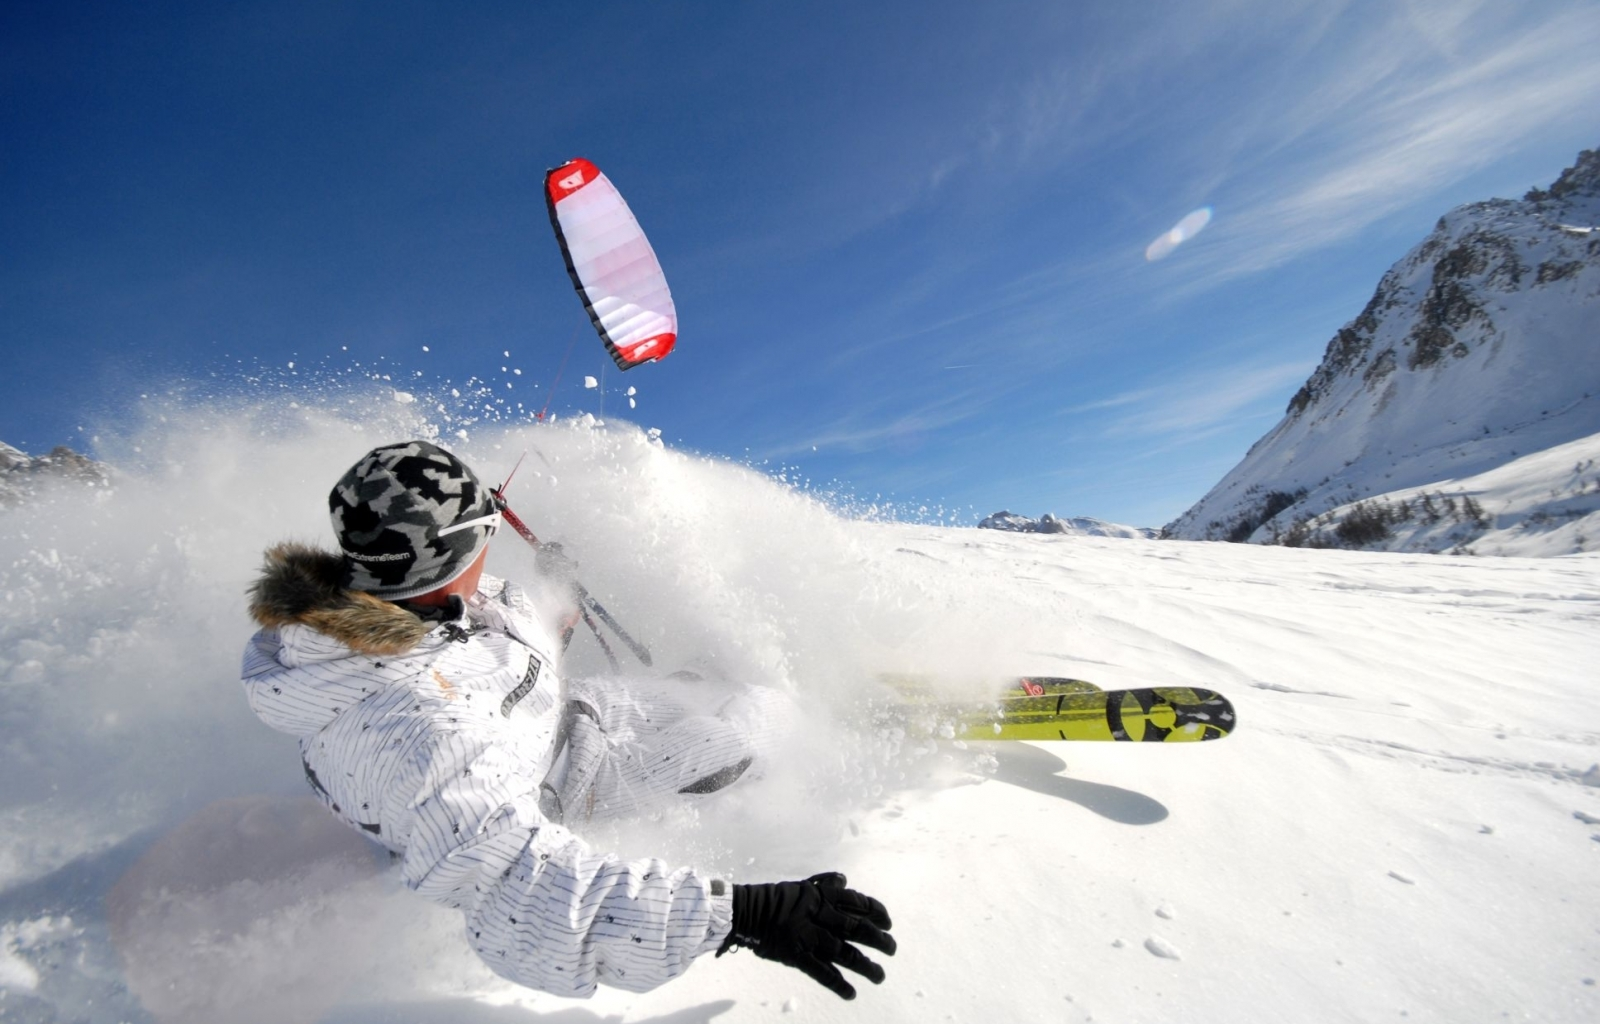 43579 download wallpaper Sports, Winter screensavers and pictures for free